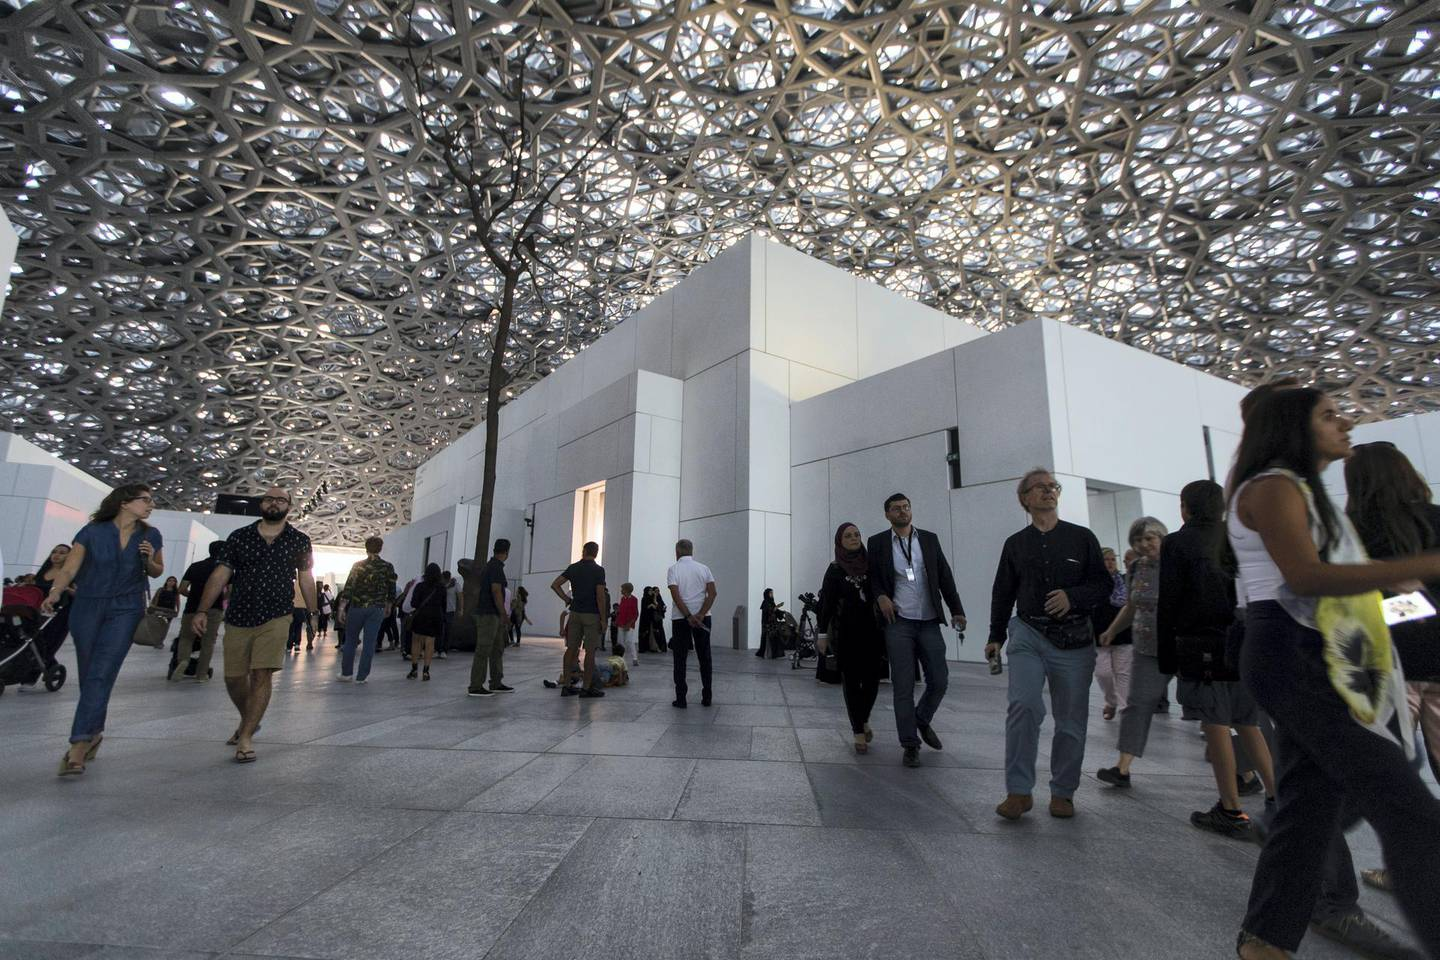 Abu Dhabi, United Arab Emirates, November 11, 2017:    Visitors attend the opening day at the Louvre Abu Dhabi on Saadiyat Island in Abu Dhabi on November 11, 2017. Christopher Pike / The National  Reporter: James Langton, John Dennehy Section: News